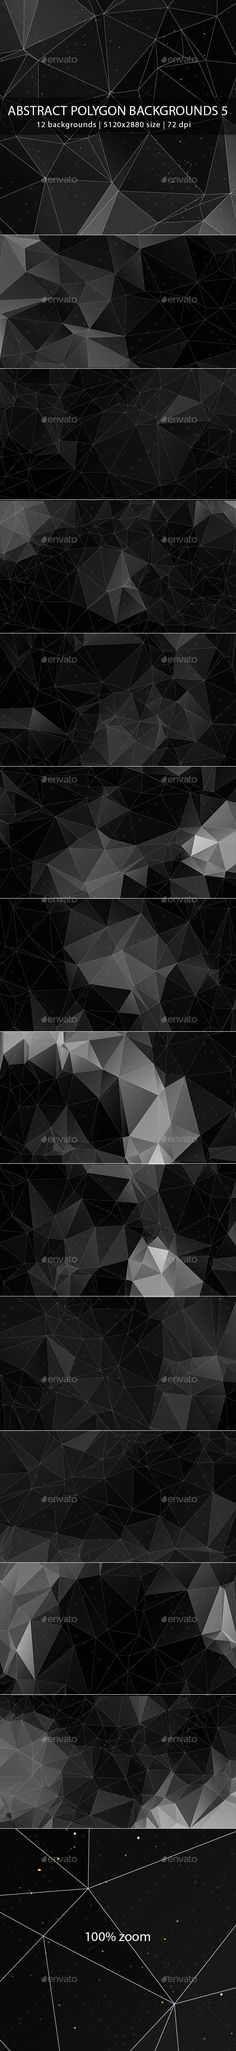 Abstract Polygon Backgrounds #design Download: http://graphicriver.net/item/abstract-polygon-backgrounds-5/9896263?ref=ksioks